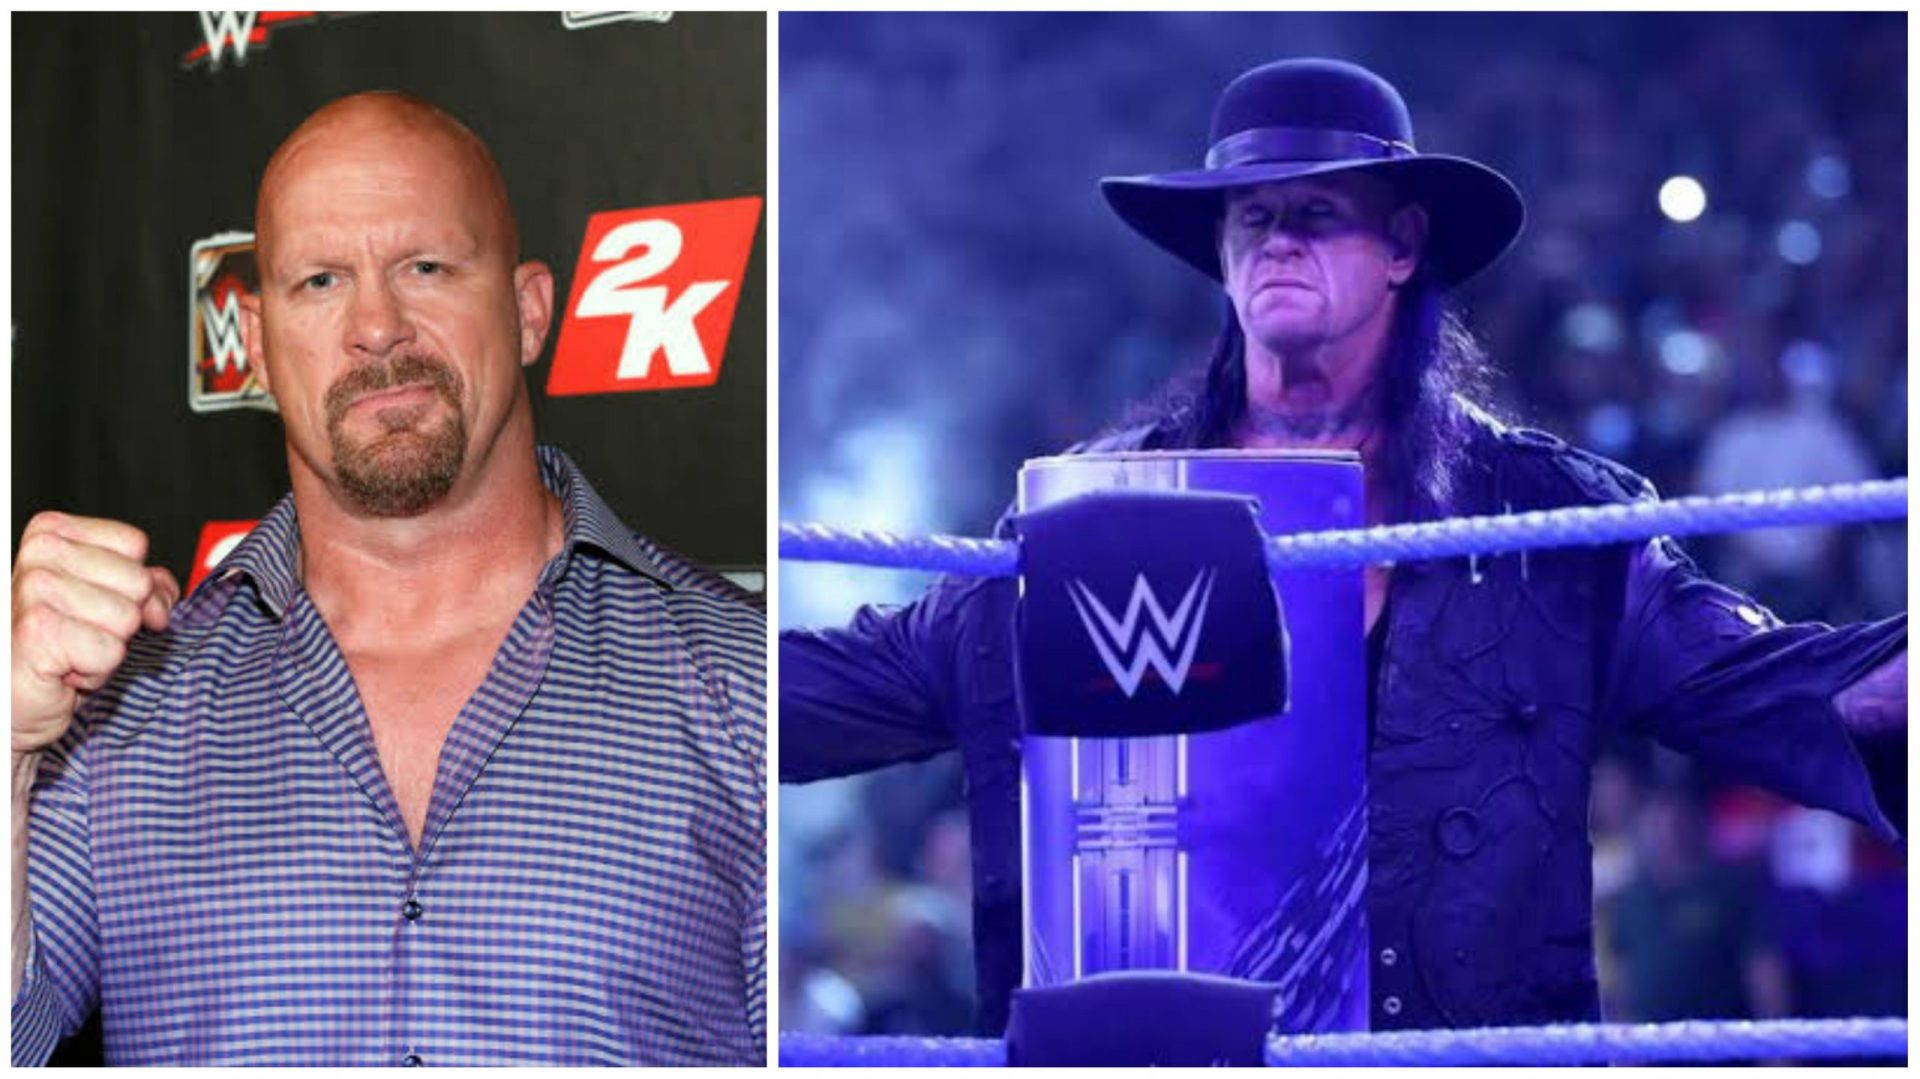 Steve Austin comments on The Undertaker embracing his real-life self in public - THE SPORTS ROOM